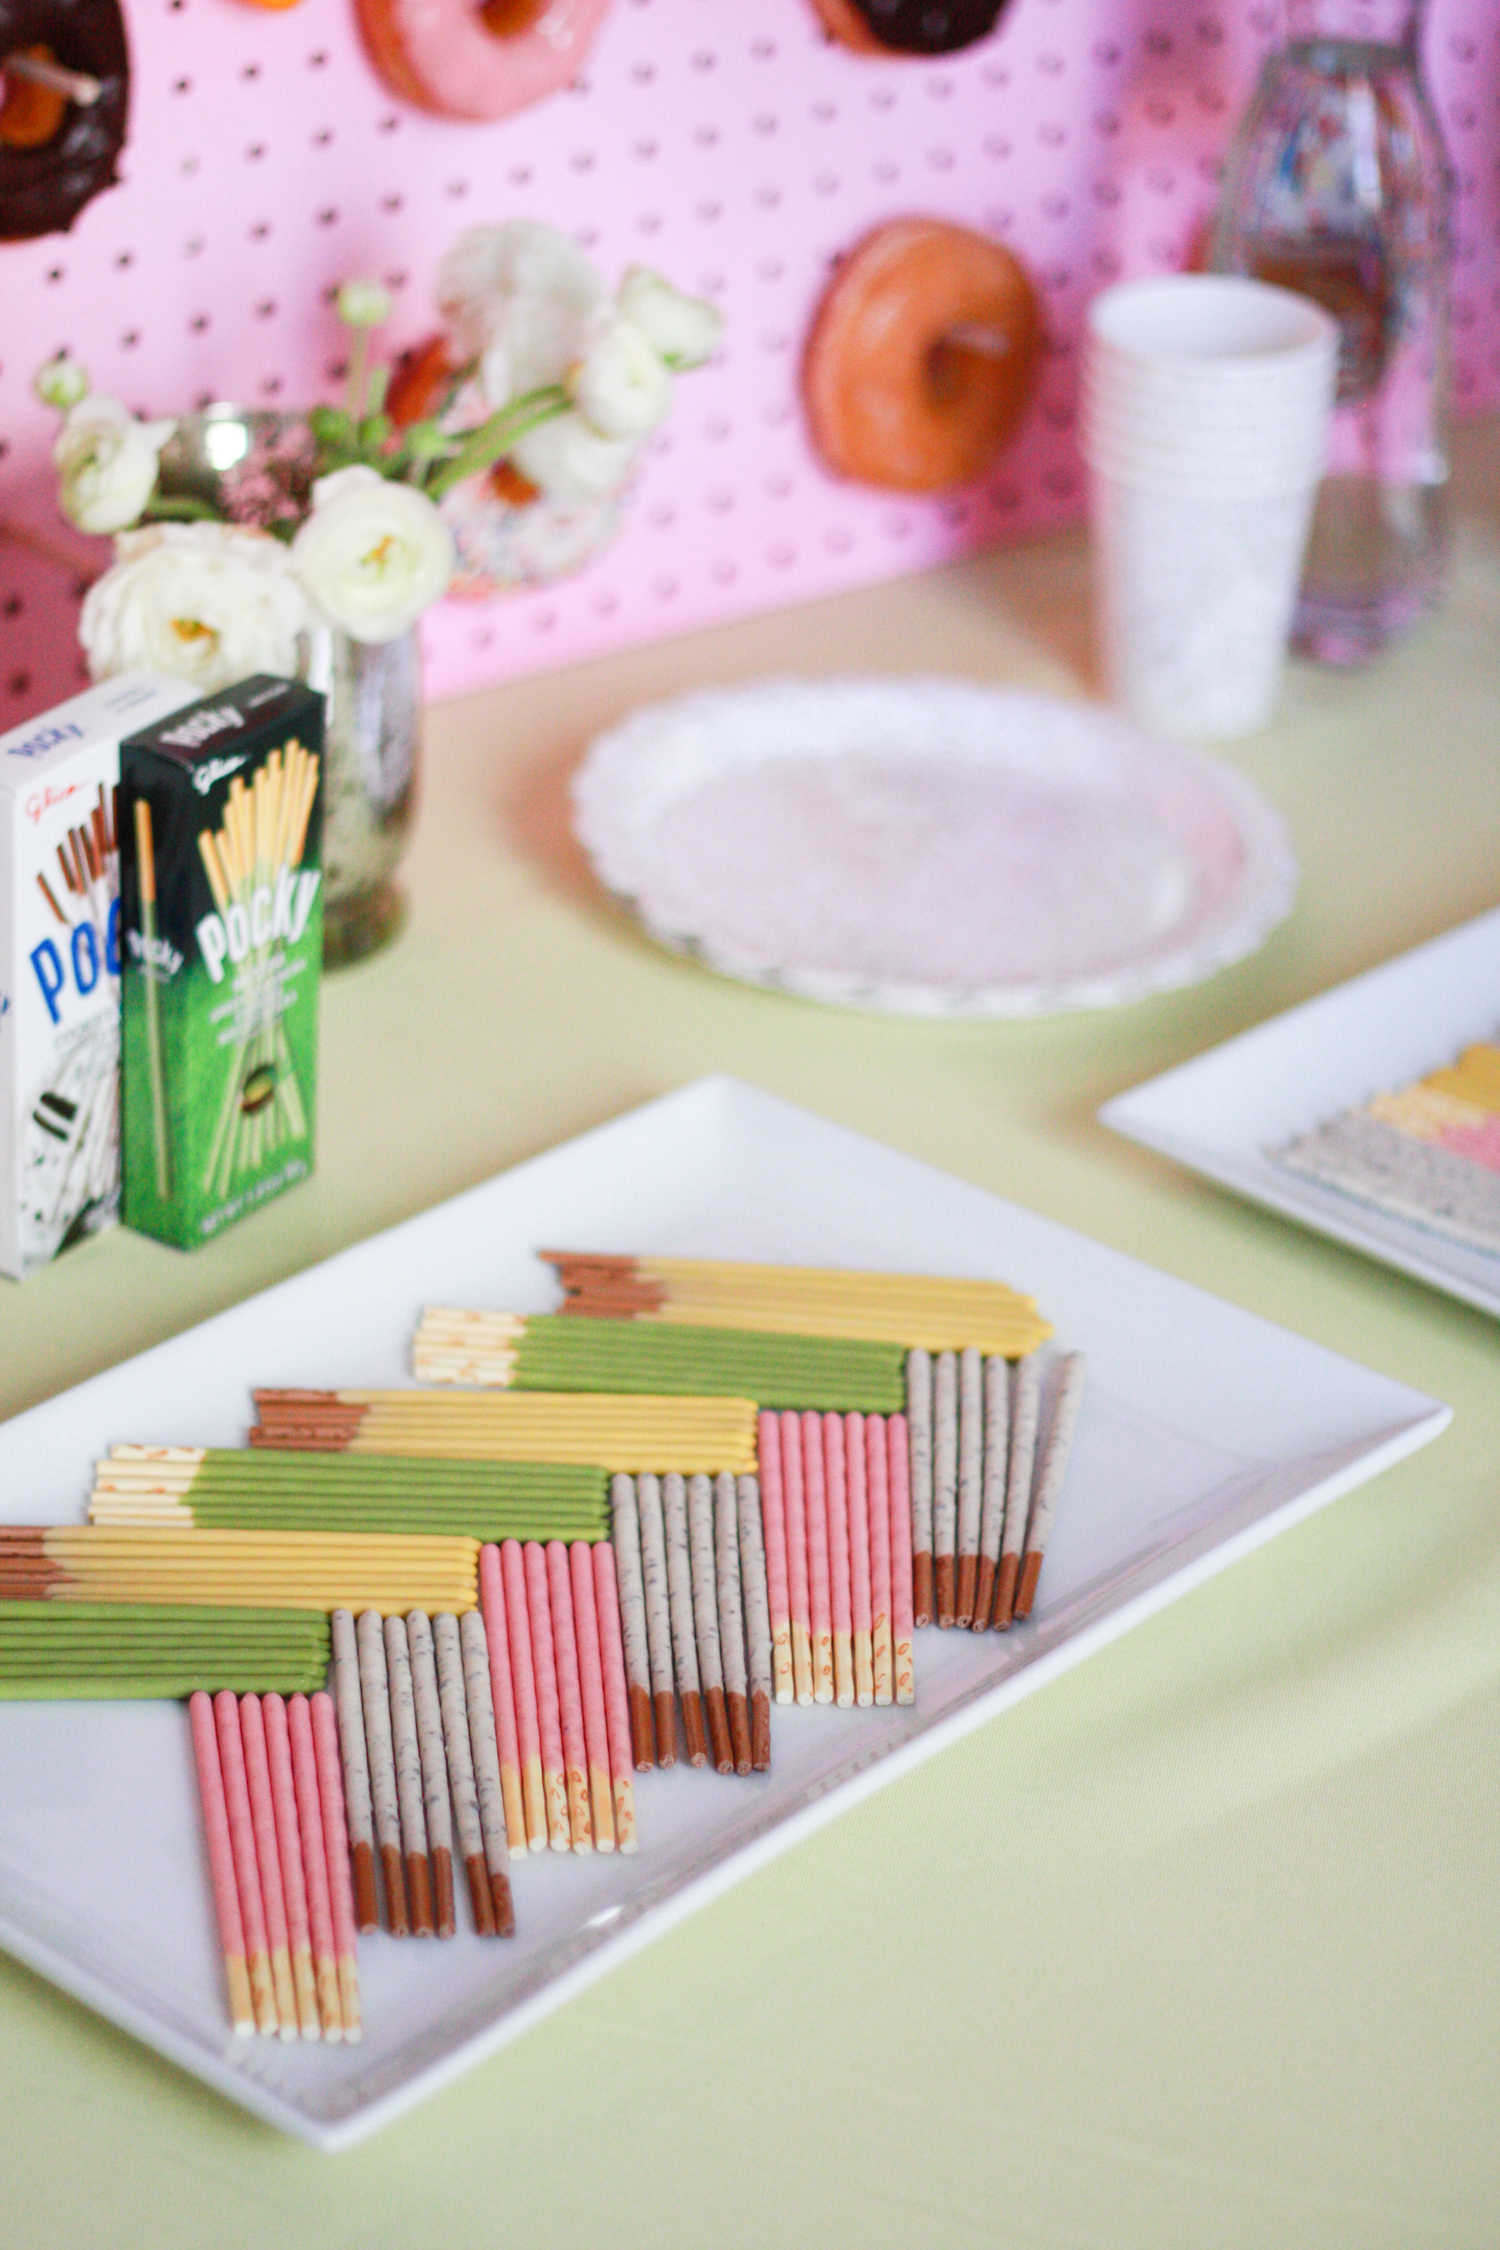 Every dessert bar needs some Pocky. ;)